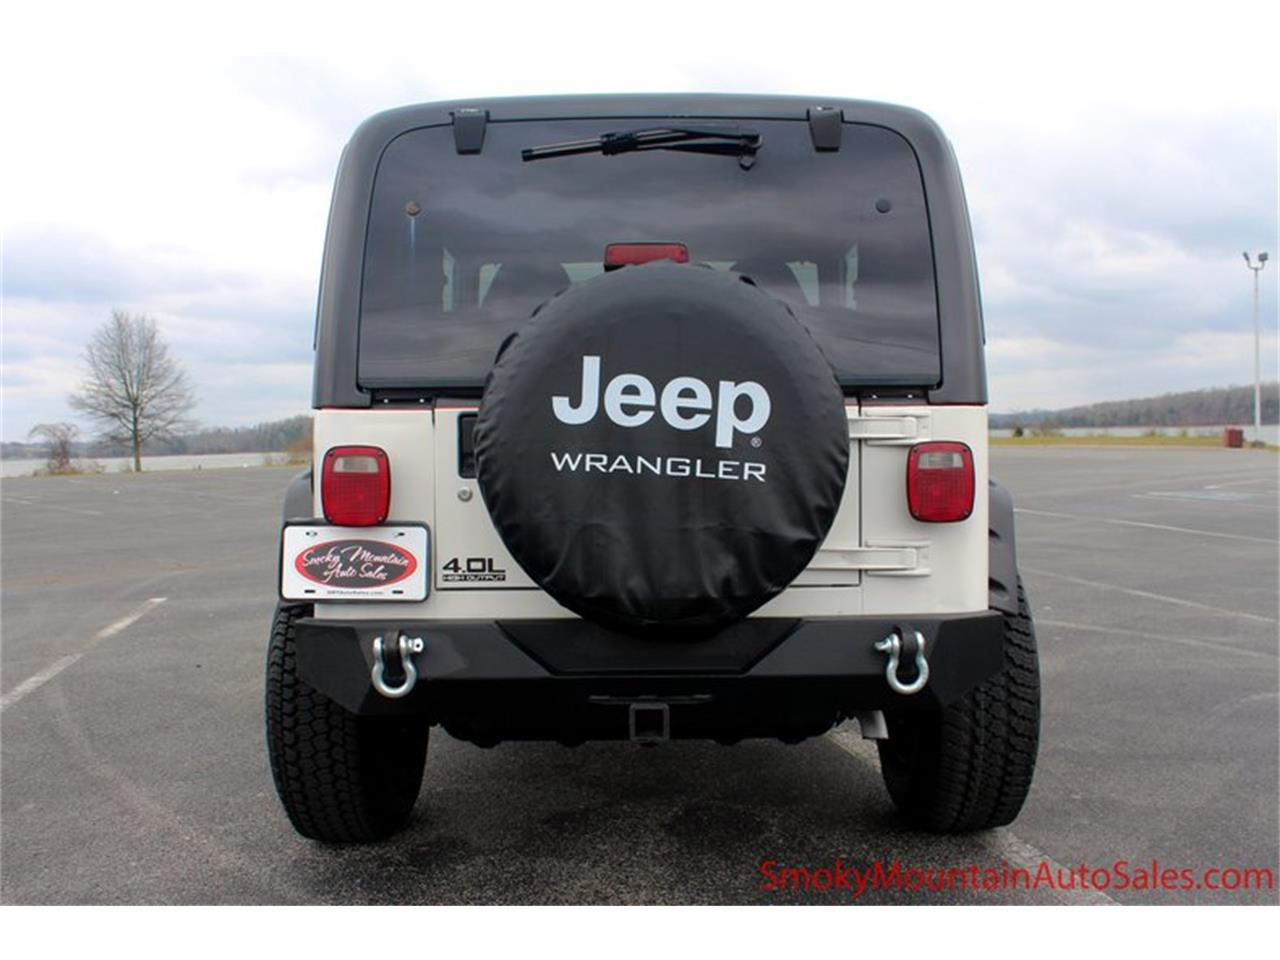 Large Picture of '03 Jeep Wrangler located in Lenoir City Tennessee - $12,995.00 - P95Y